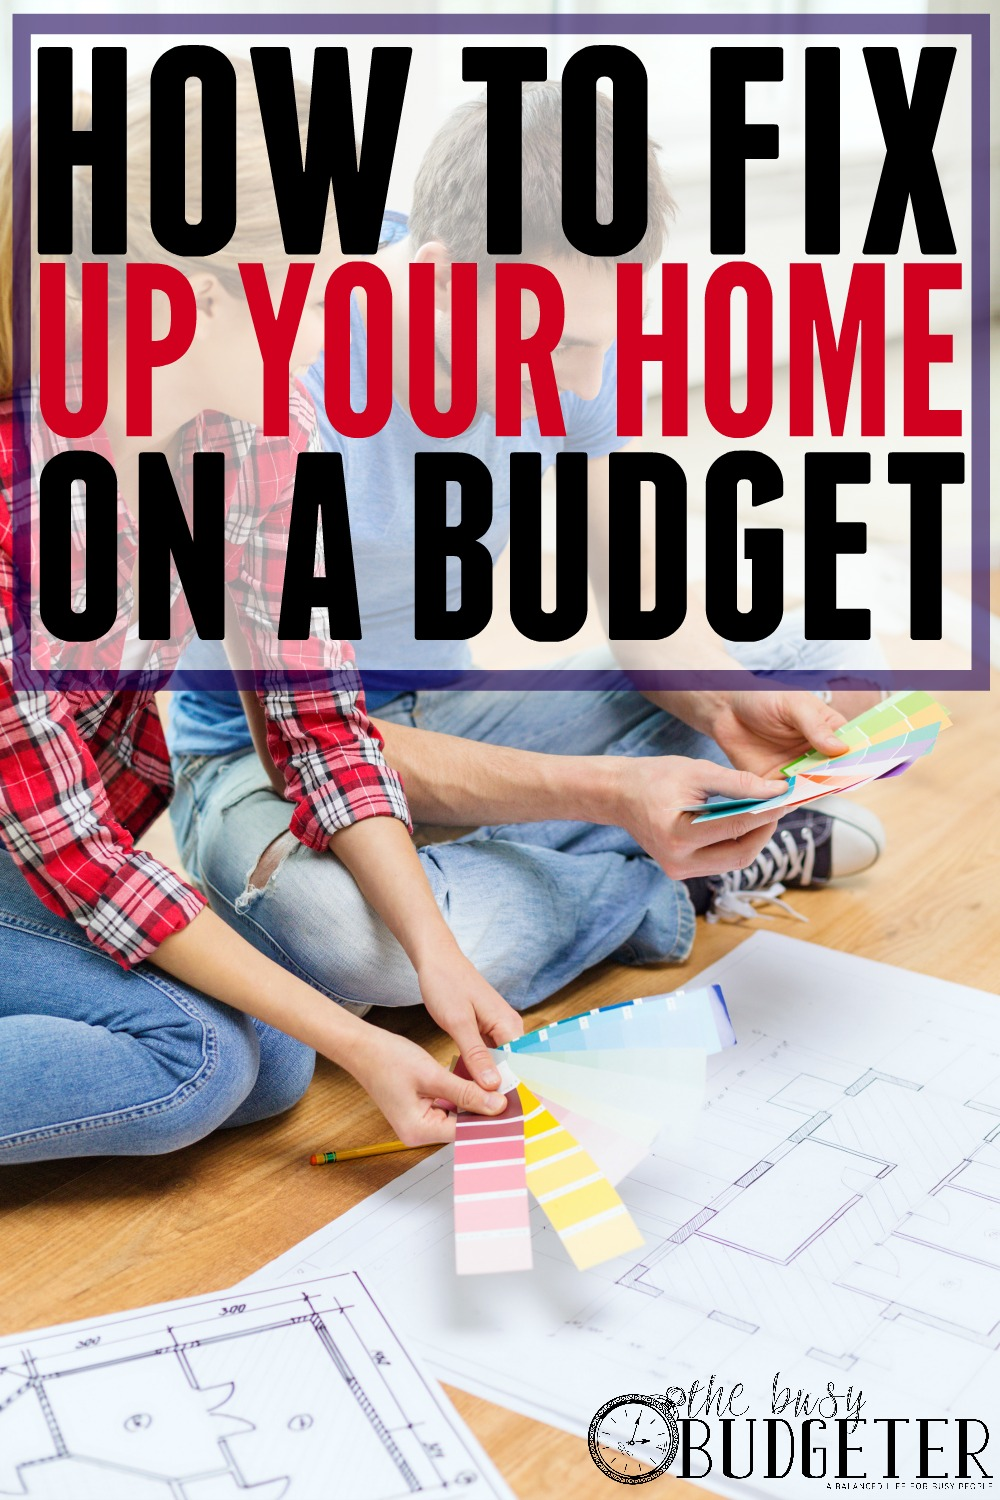 Fix Up Your Home on A Budget: Love this! I've been trying to tell my husband why we need to prioritize doing a few updates to our house before we sell it but he keeps saying we shouldn't spend the money. This gave me some great ideas on the best changes to make and how to do it while staying within our budget!